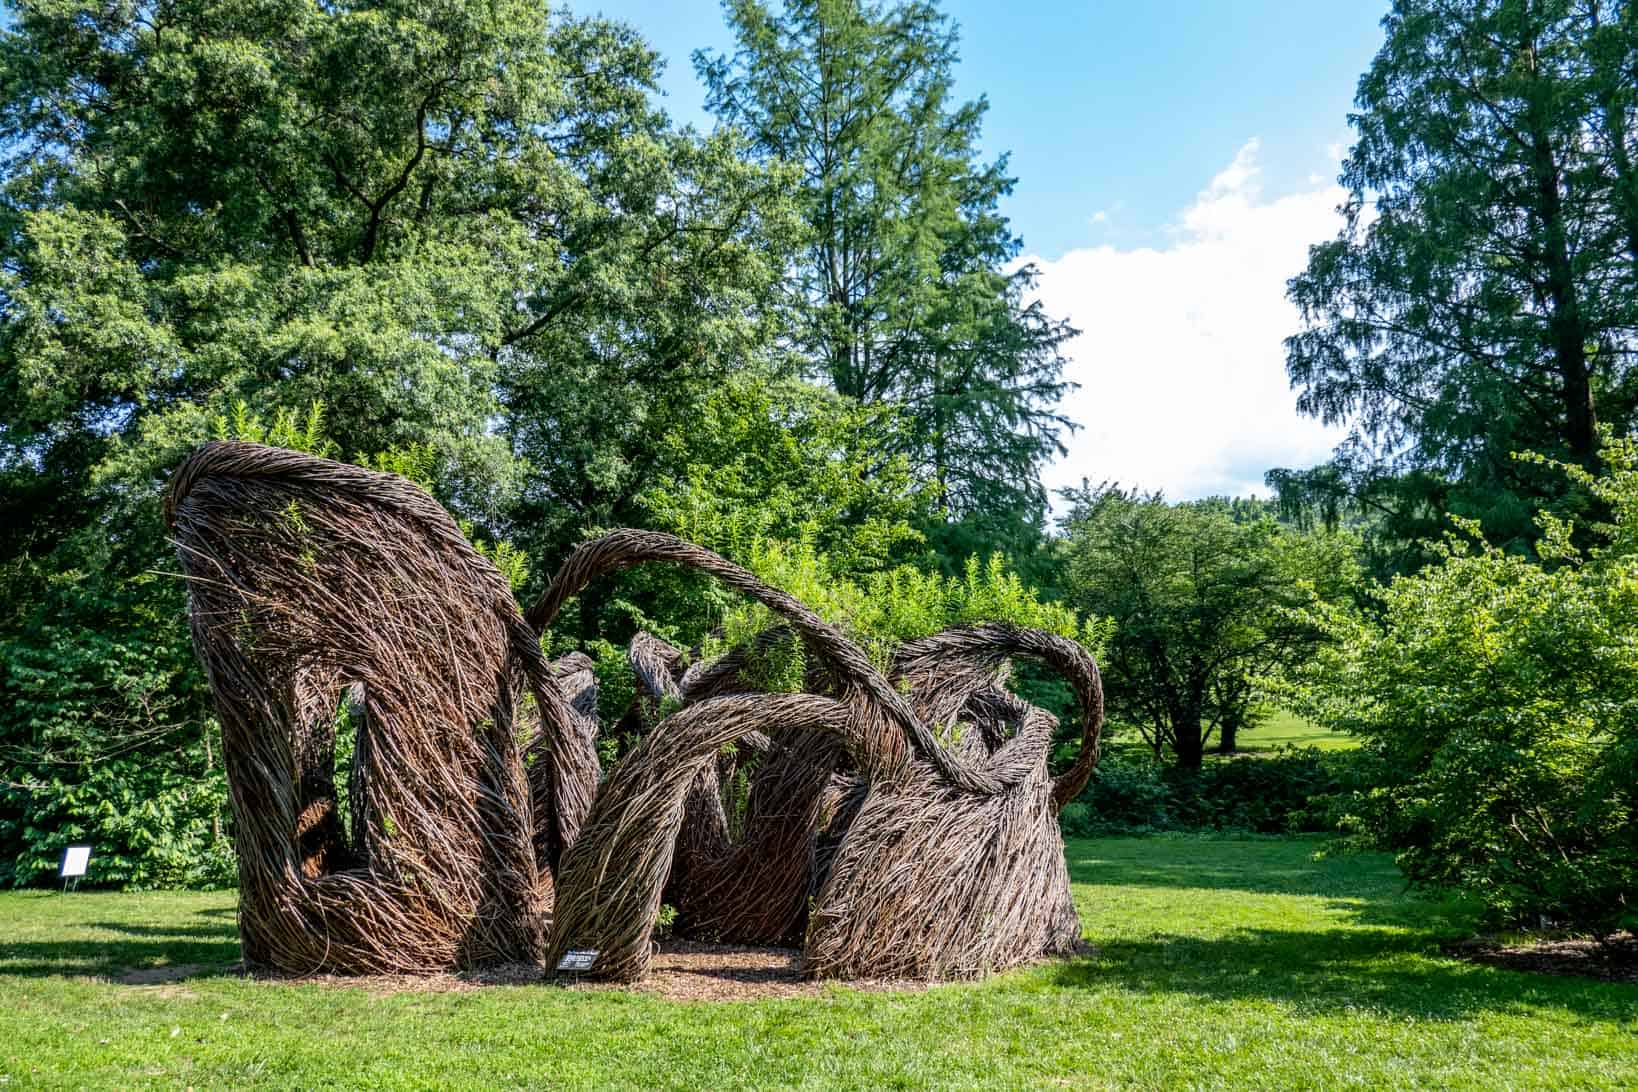 Sculpture made of twigs swirled together in a garden